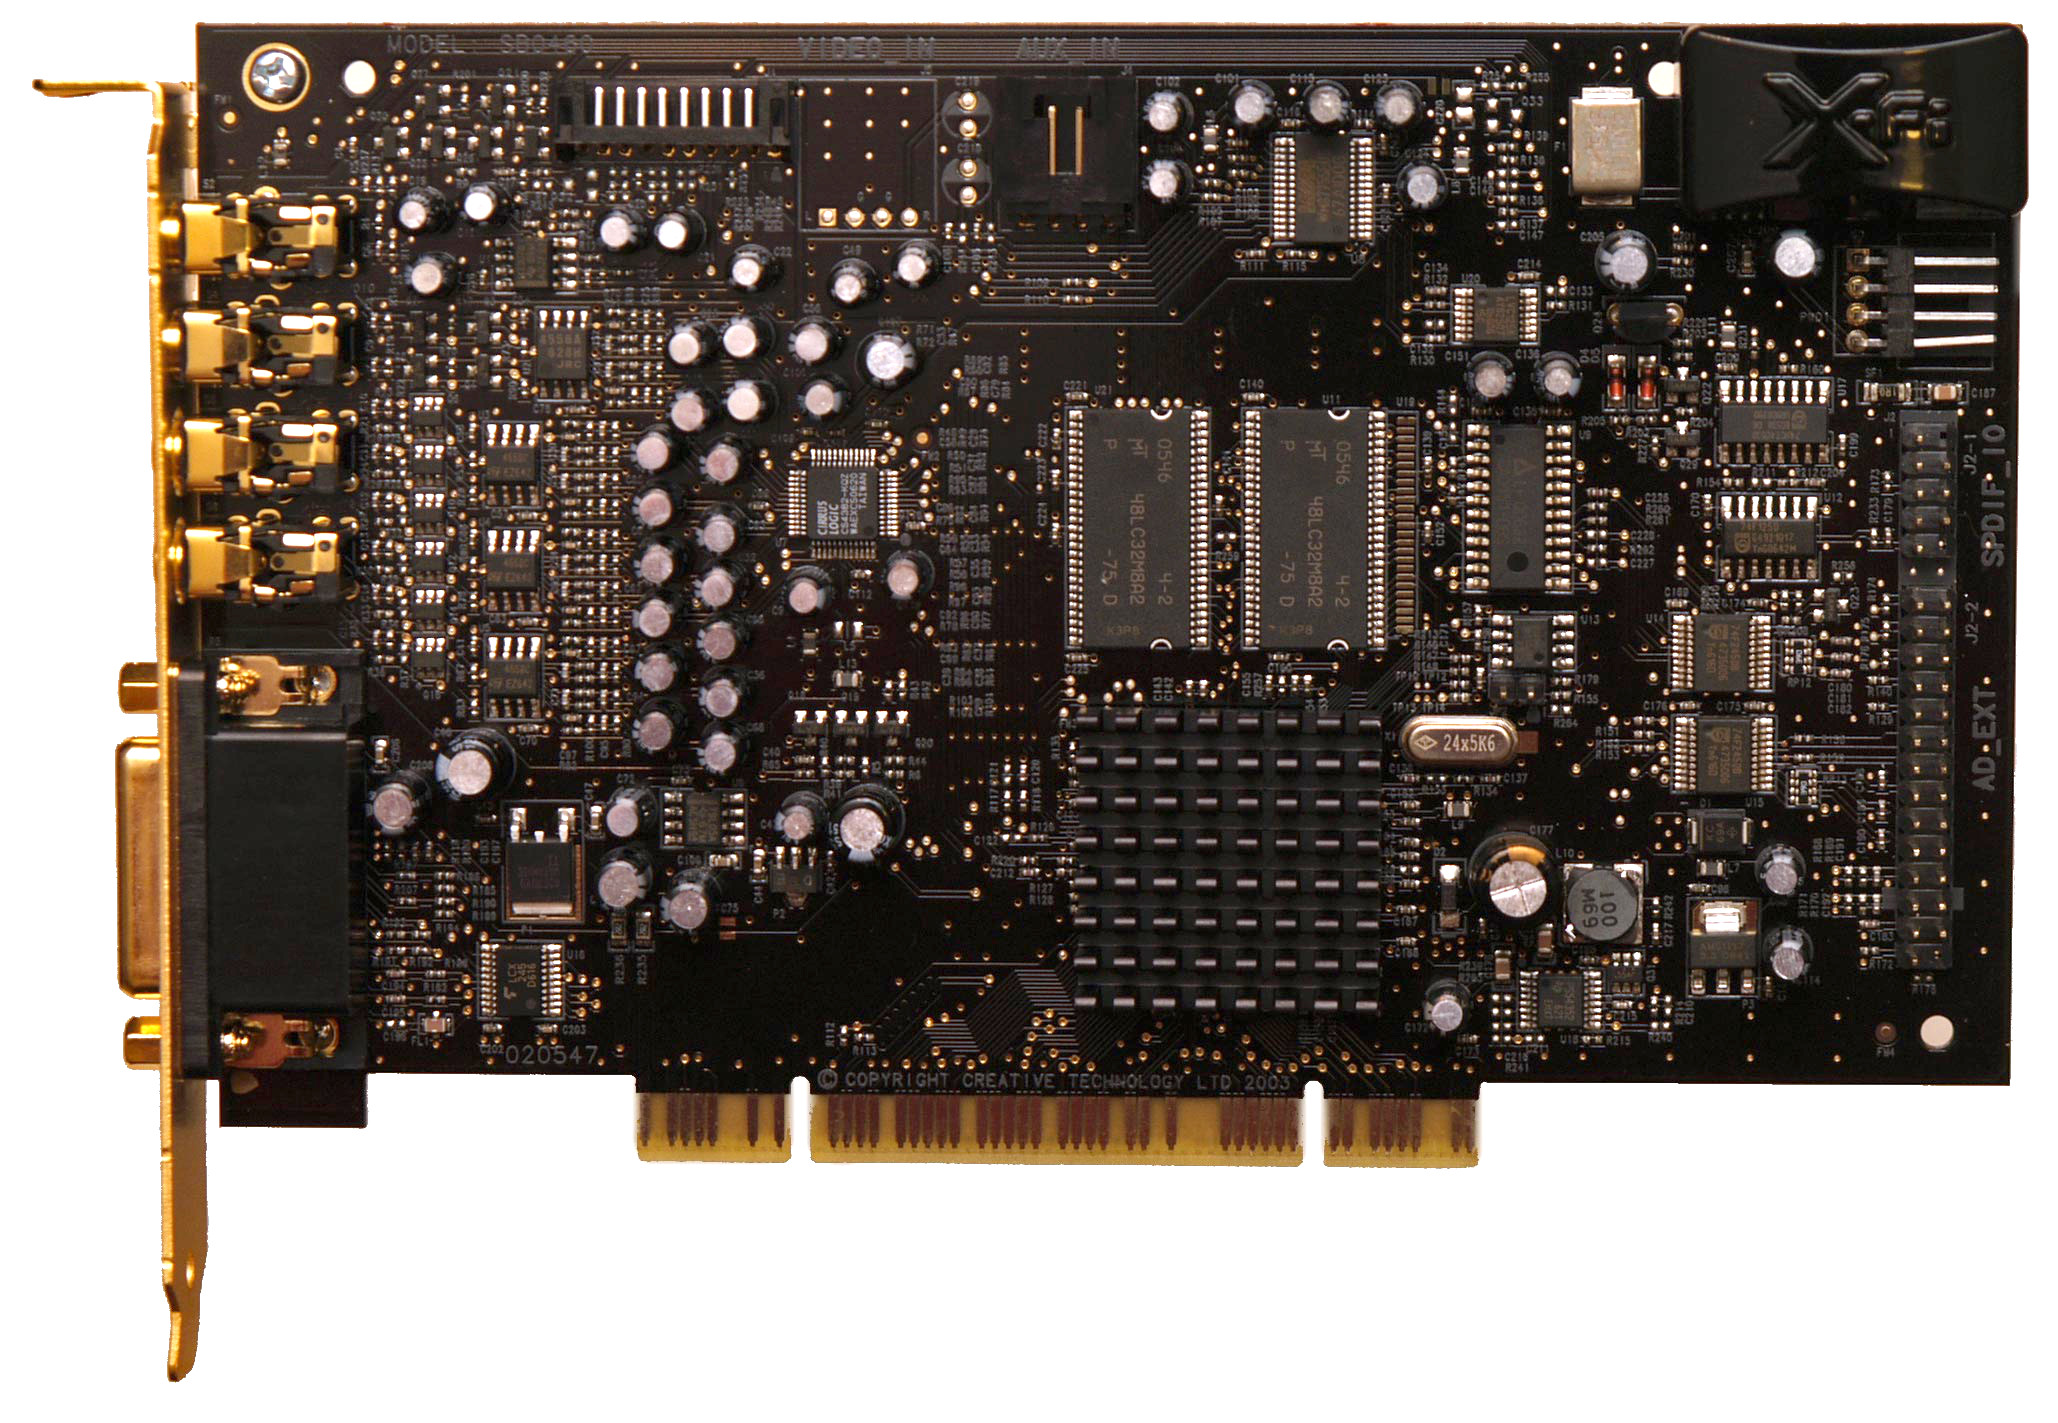 Aureal Sound Card 8820 Descargar Controlador